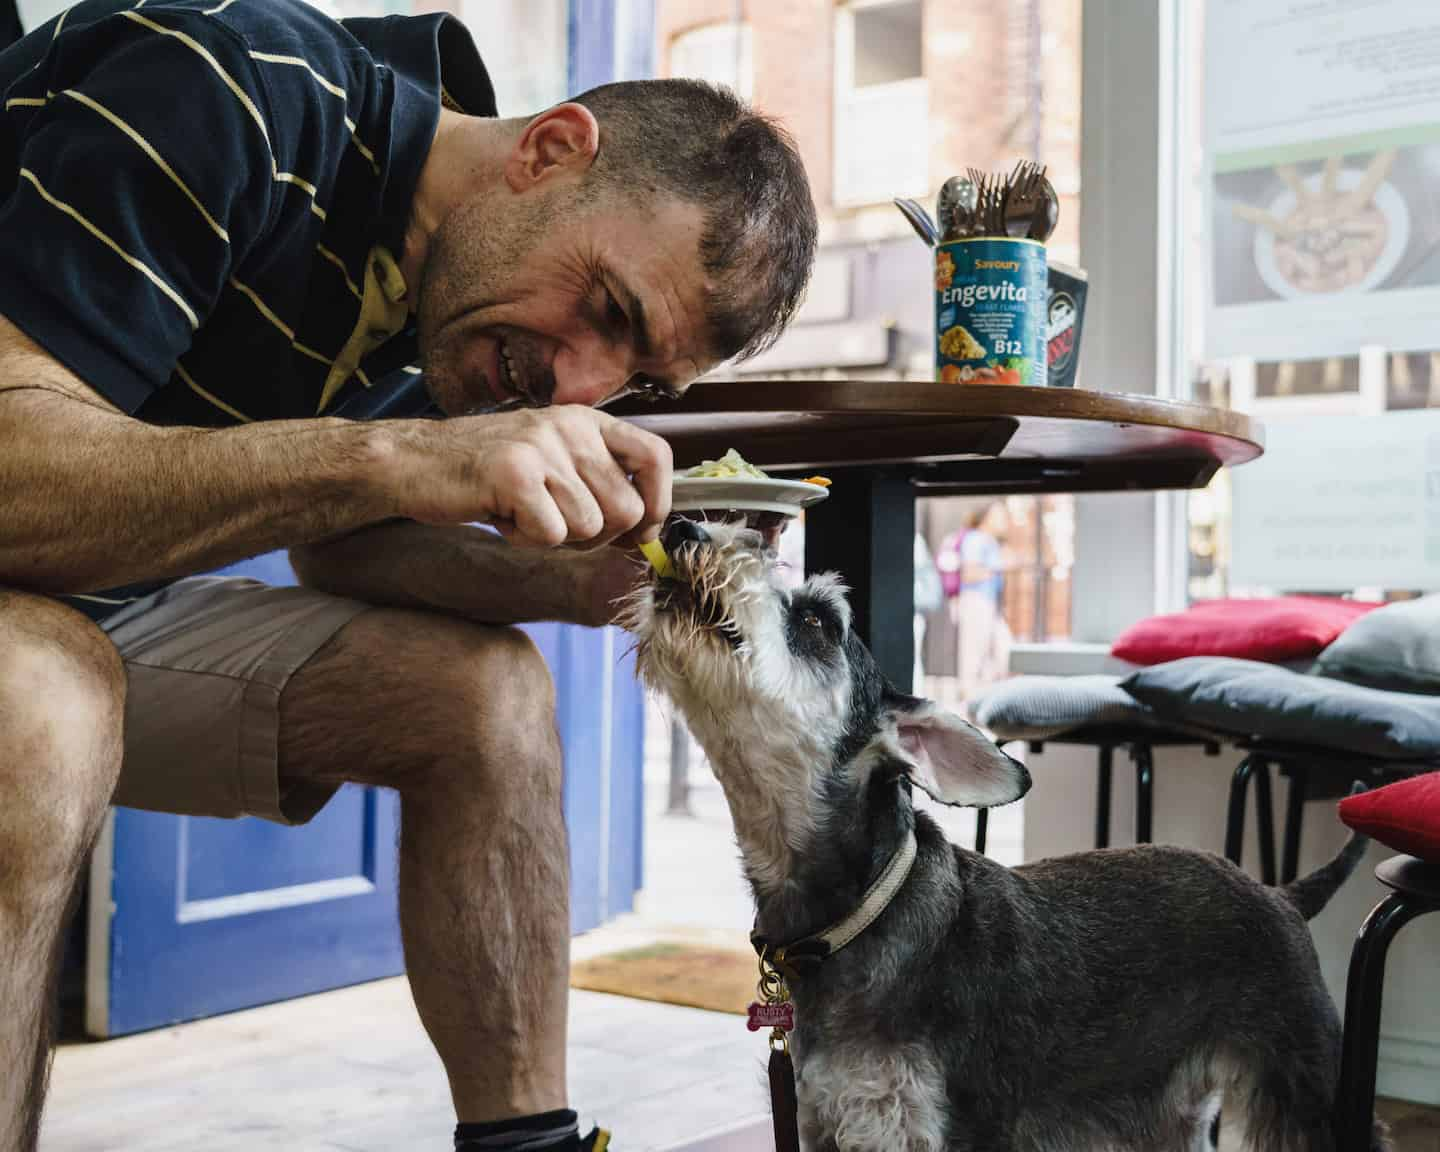 My Dog Friendly London By Rusty Red The Schnauzer | Dog Friendly Shoreditch and Hoxton Vegan Yes 1